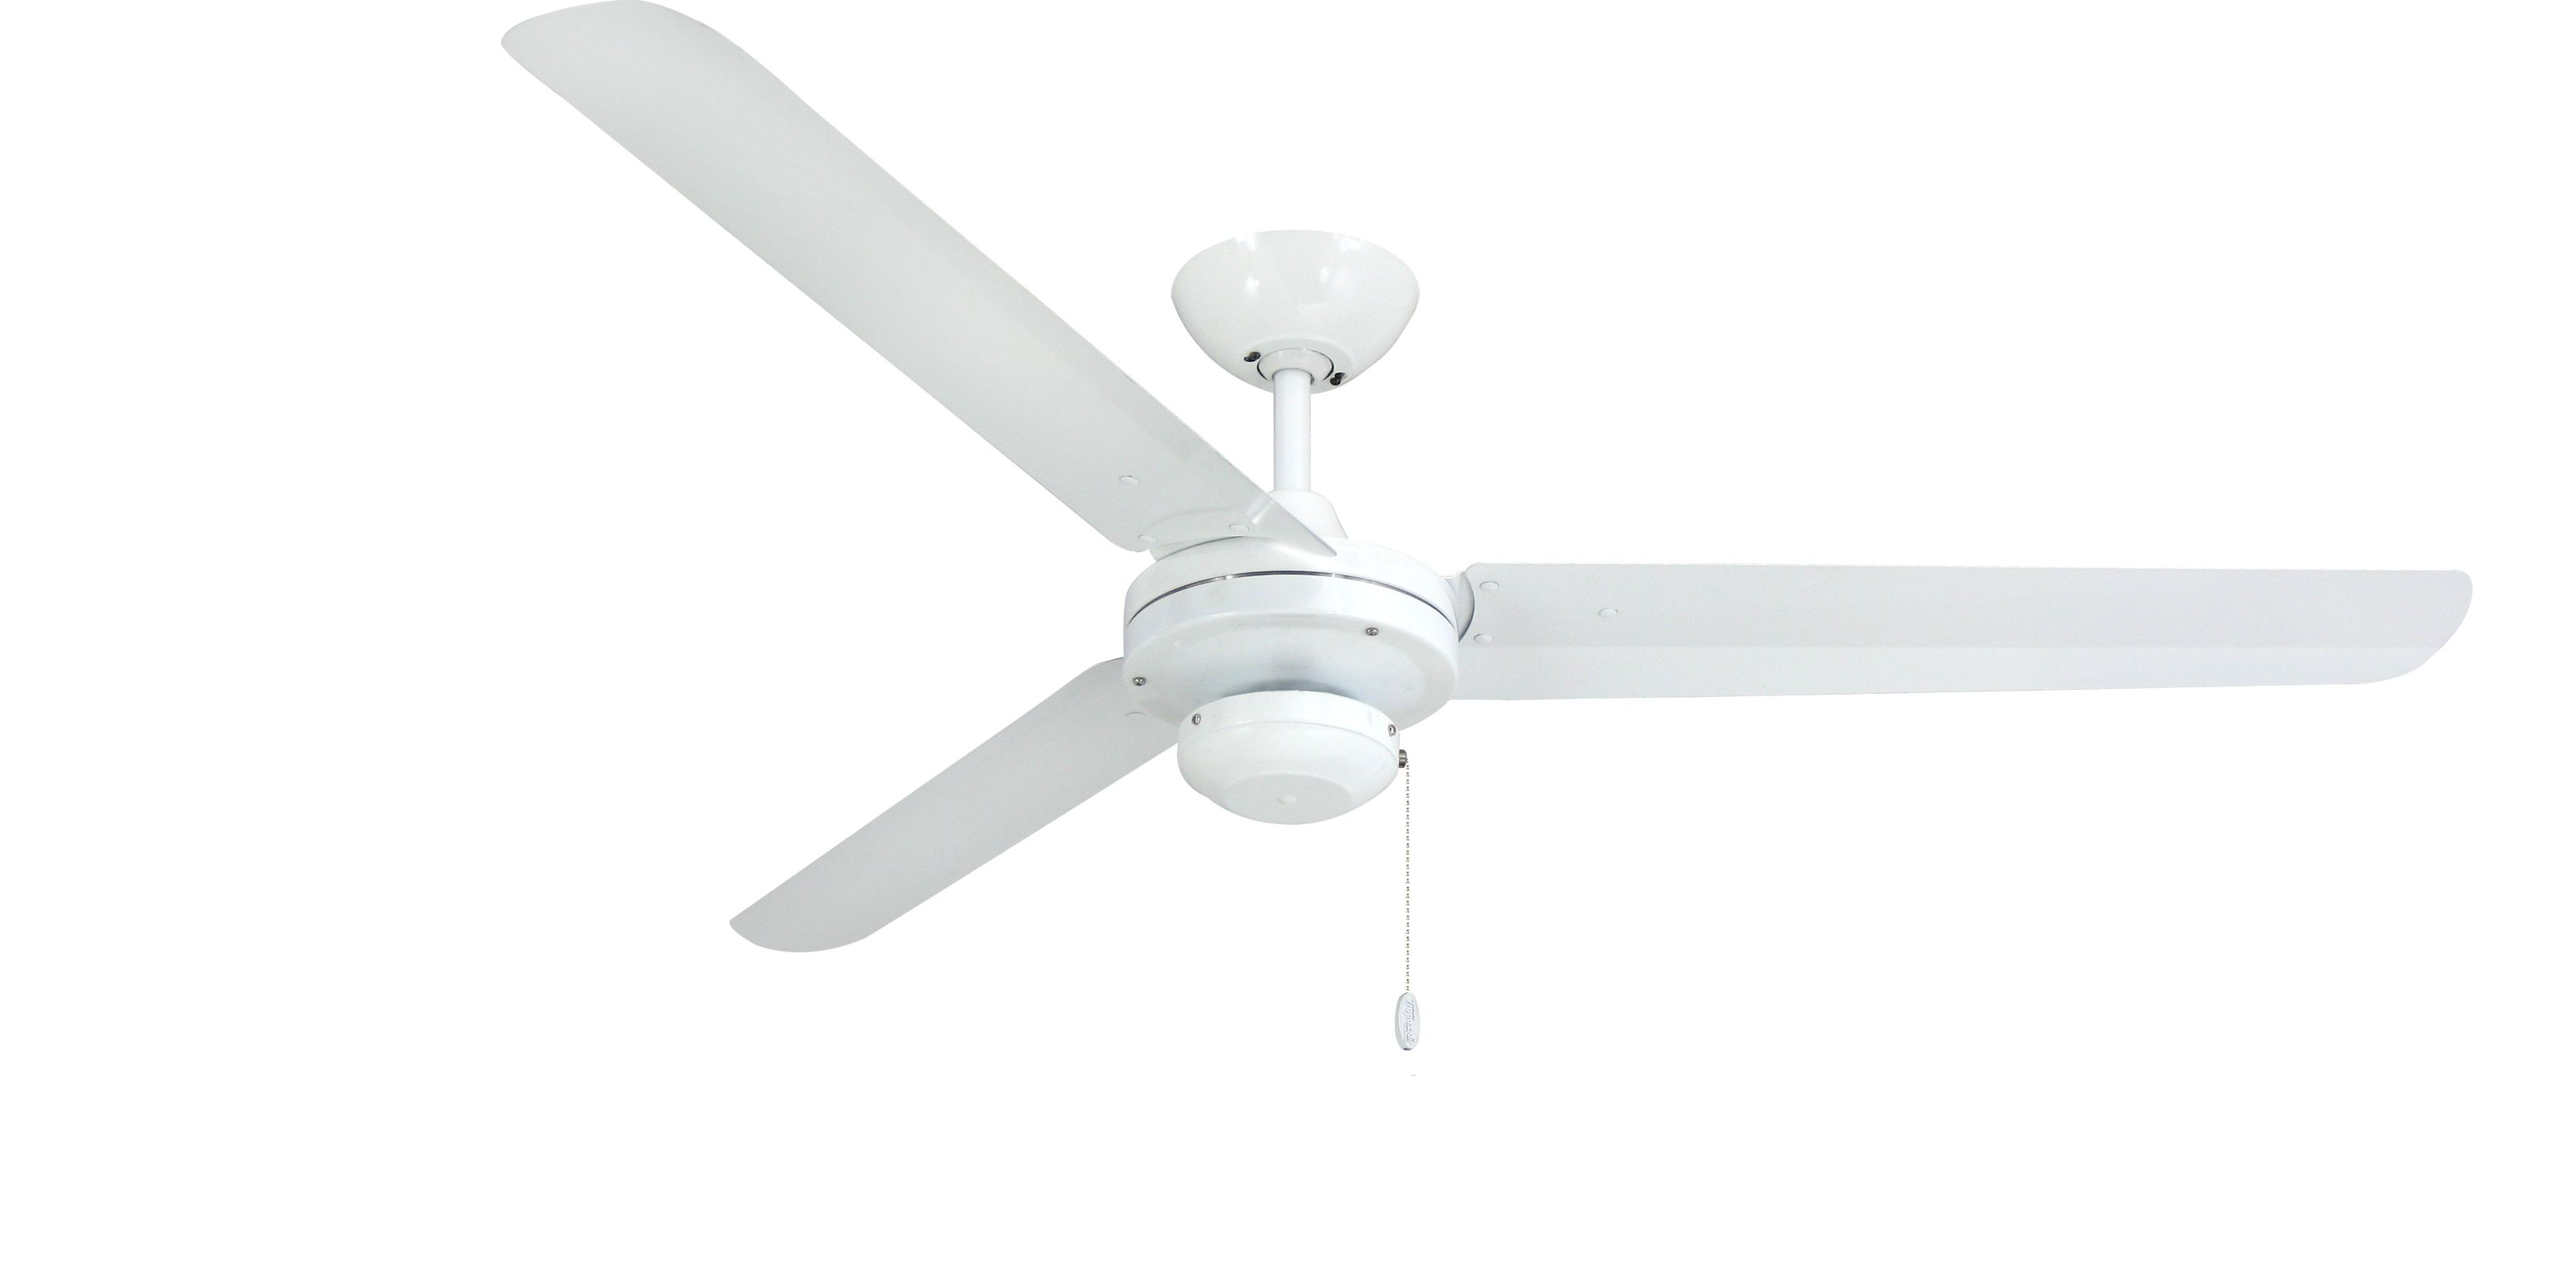 TroposAir Tornado Pure White Industrial Ceiling Fan with 56 Inch